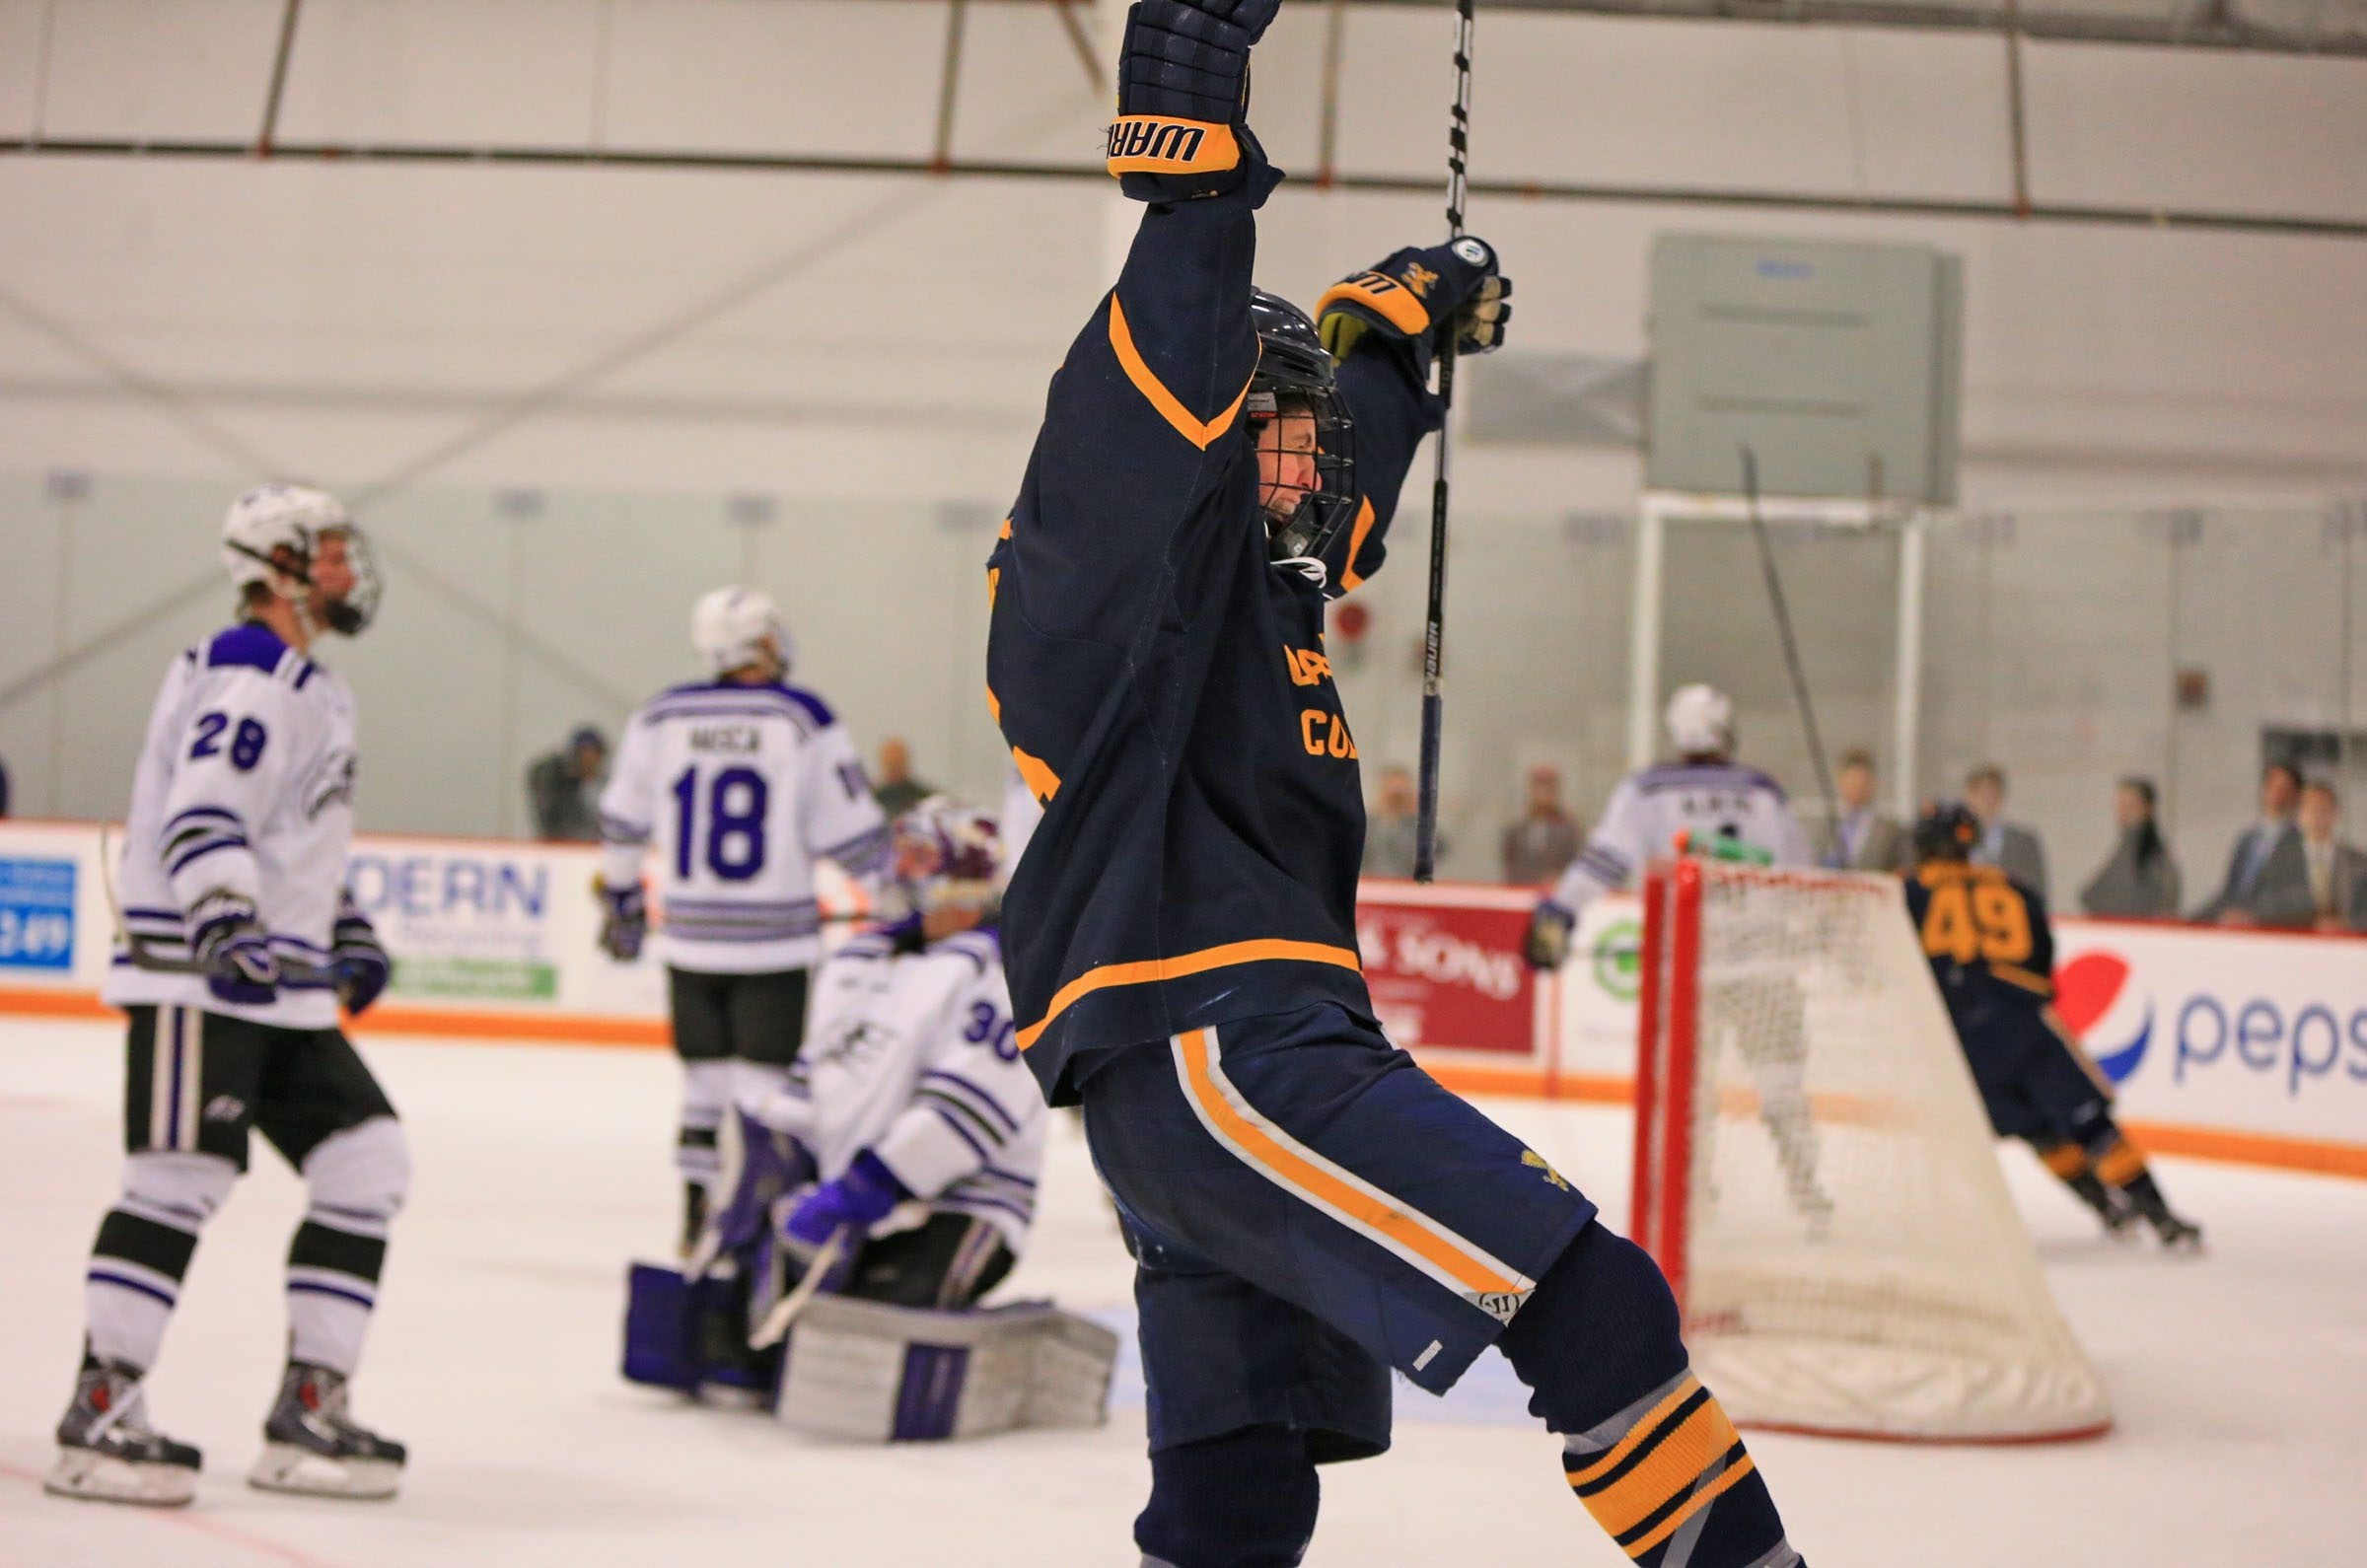 Canisius' Jeff Murray (16) celebrates the third goal of the game after scoring on  Niagara during the third period on Thursday.